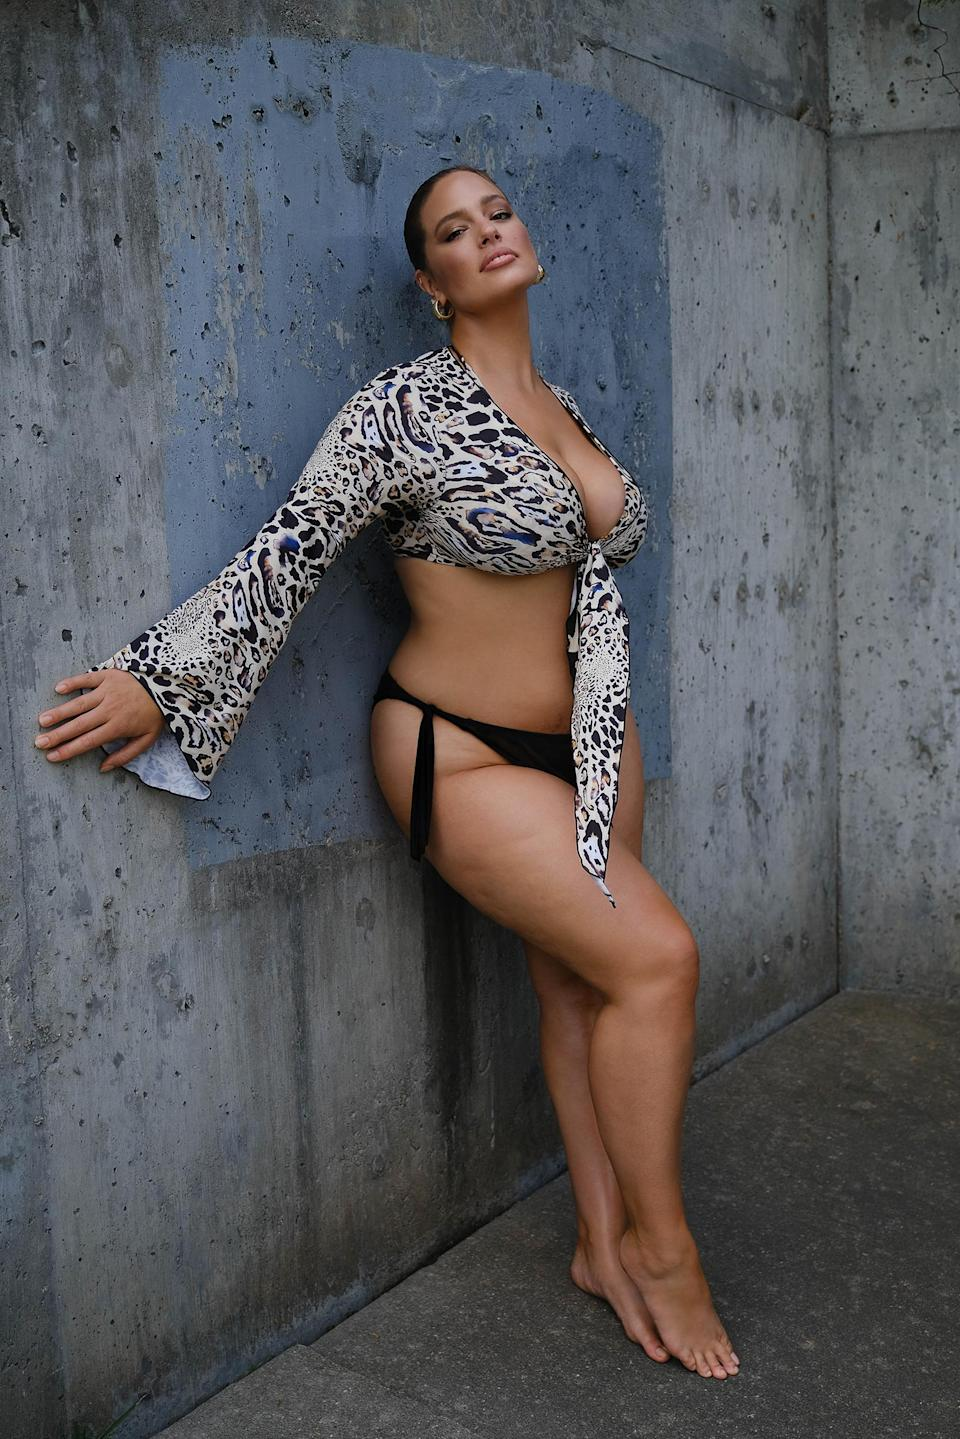 Ashley Graham shows off stretch marks in new photo shoot (Justin Ervin / Swimsuits for All)